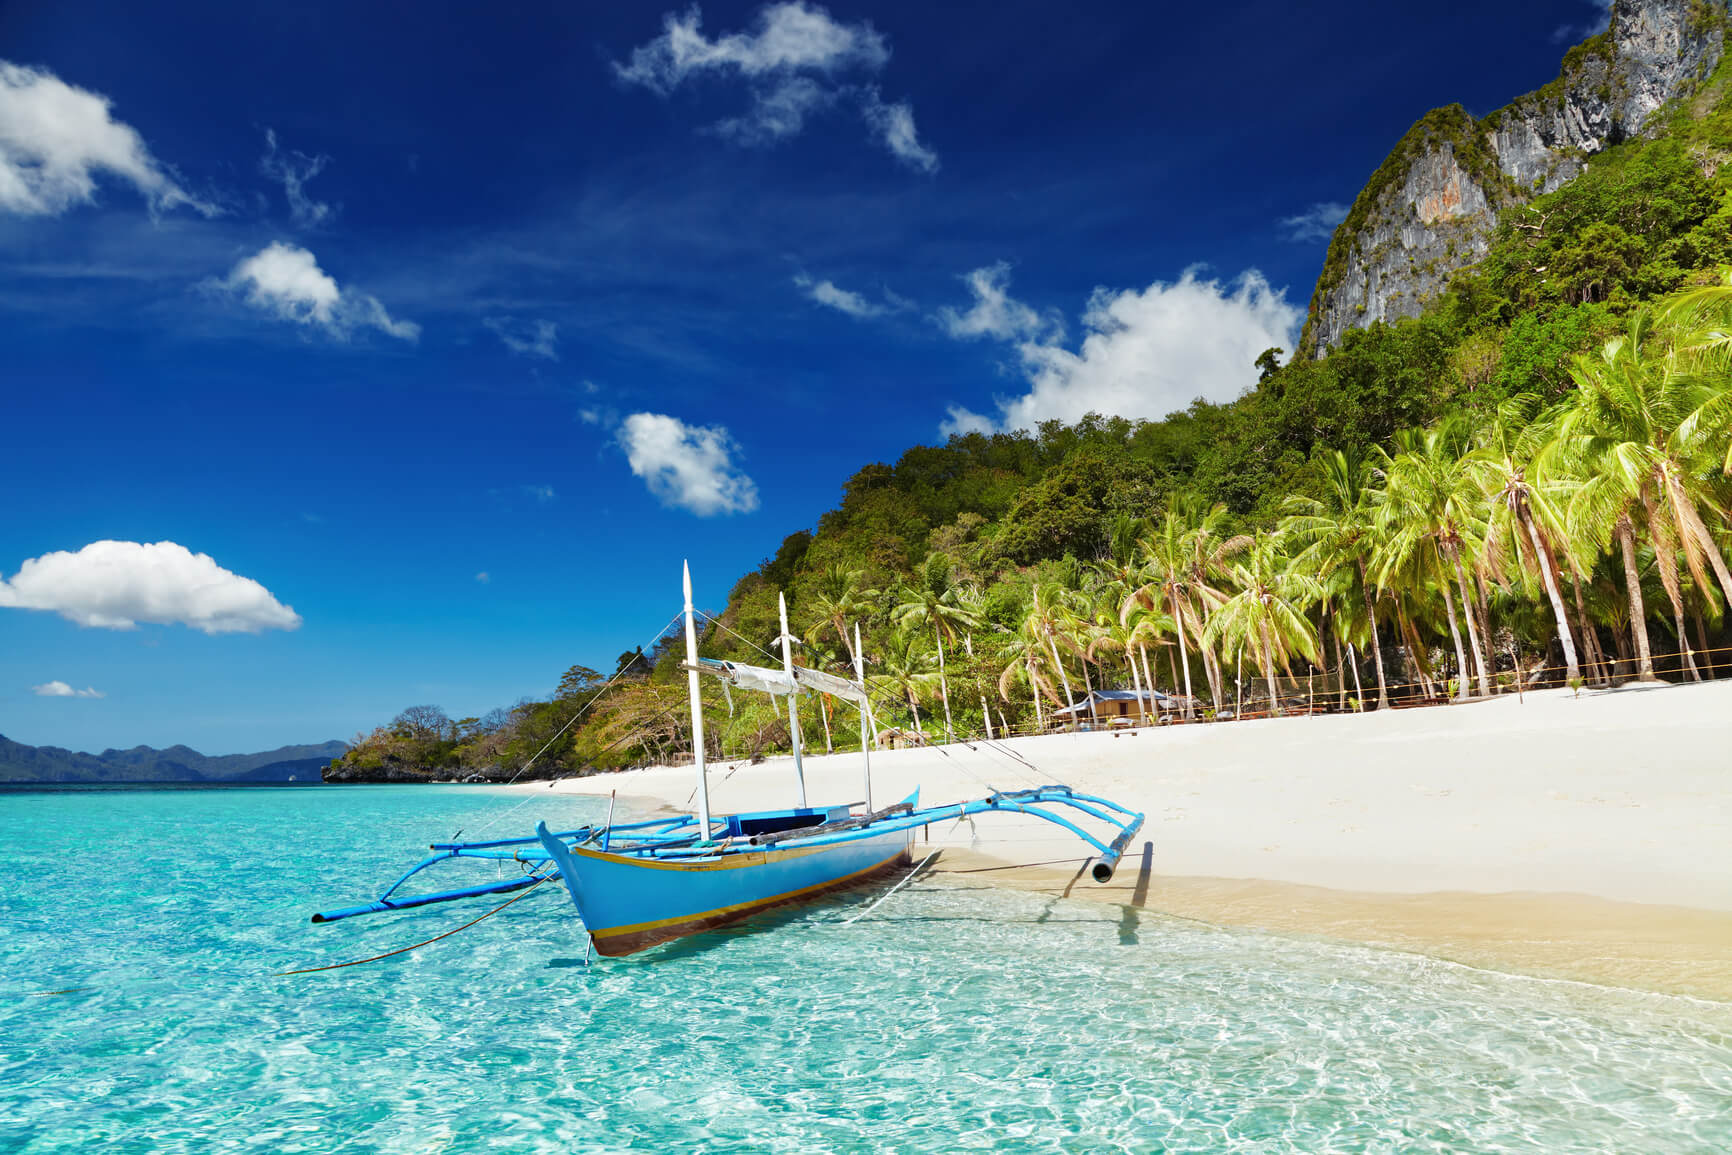 San Francisco to Manila, Philippines for only $472 roundtrip (Aug-Nov dates)